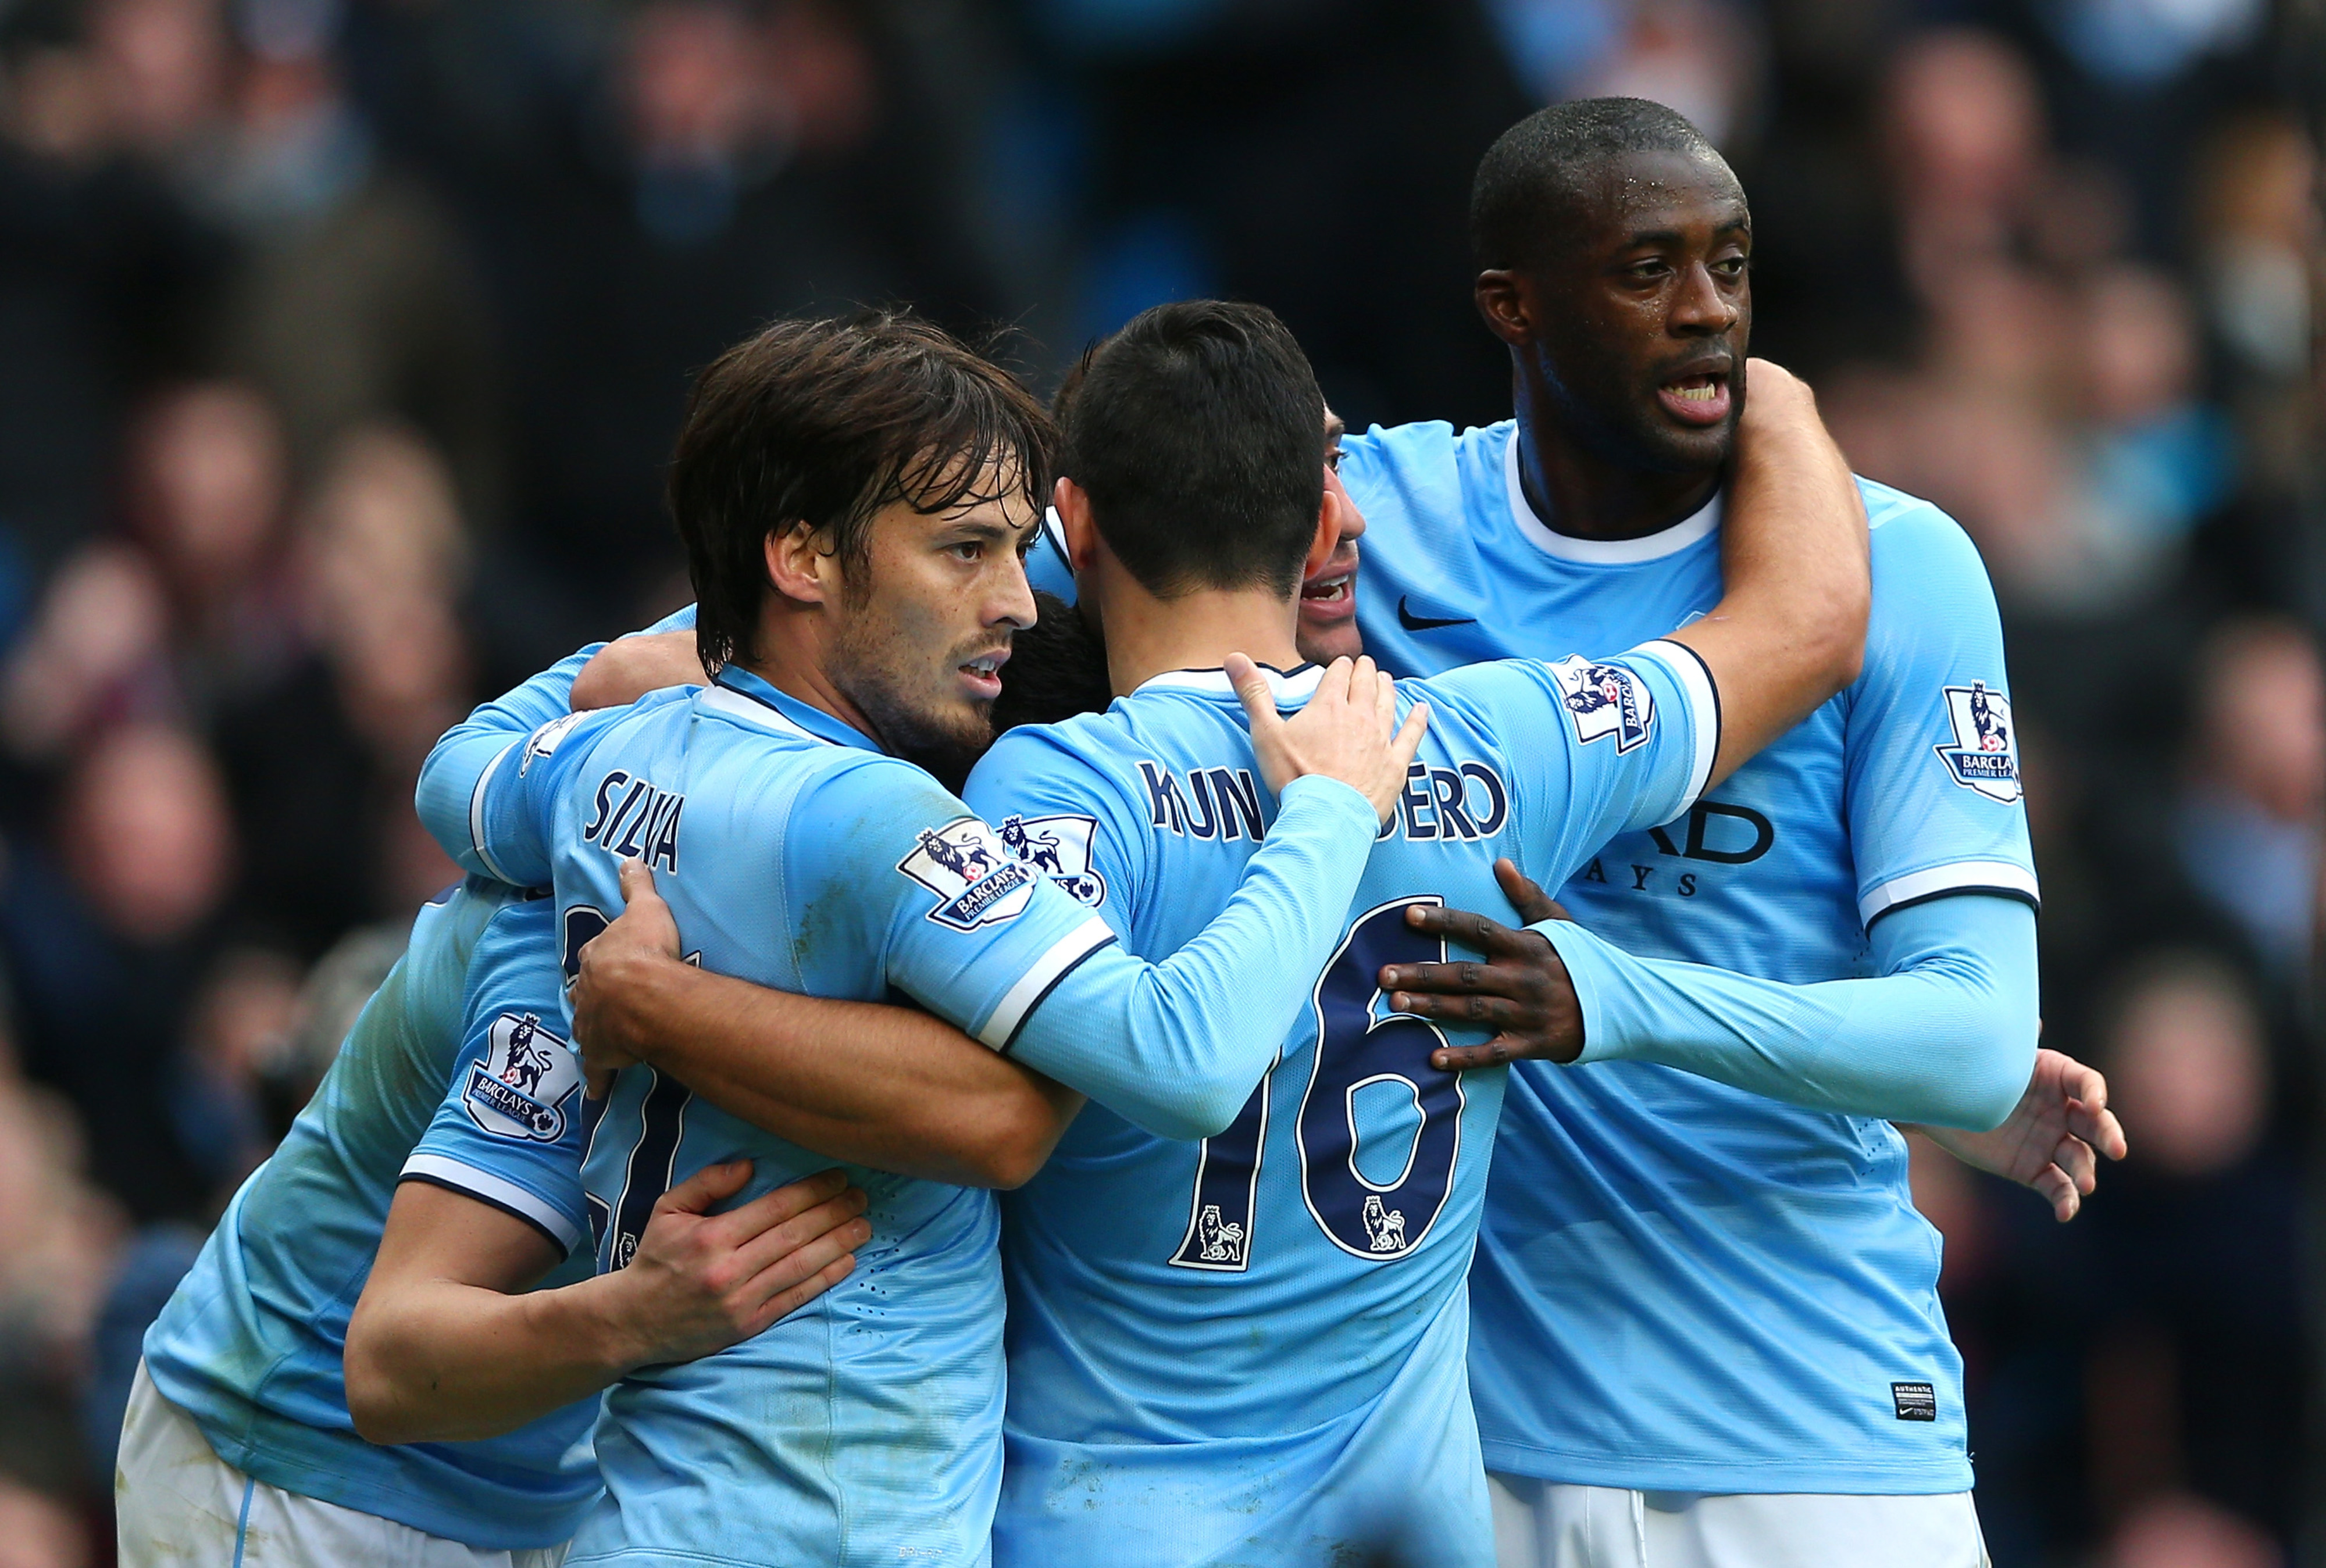 Financial Fair Play punishments set for PSG, Manchester City